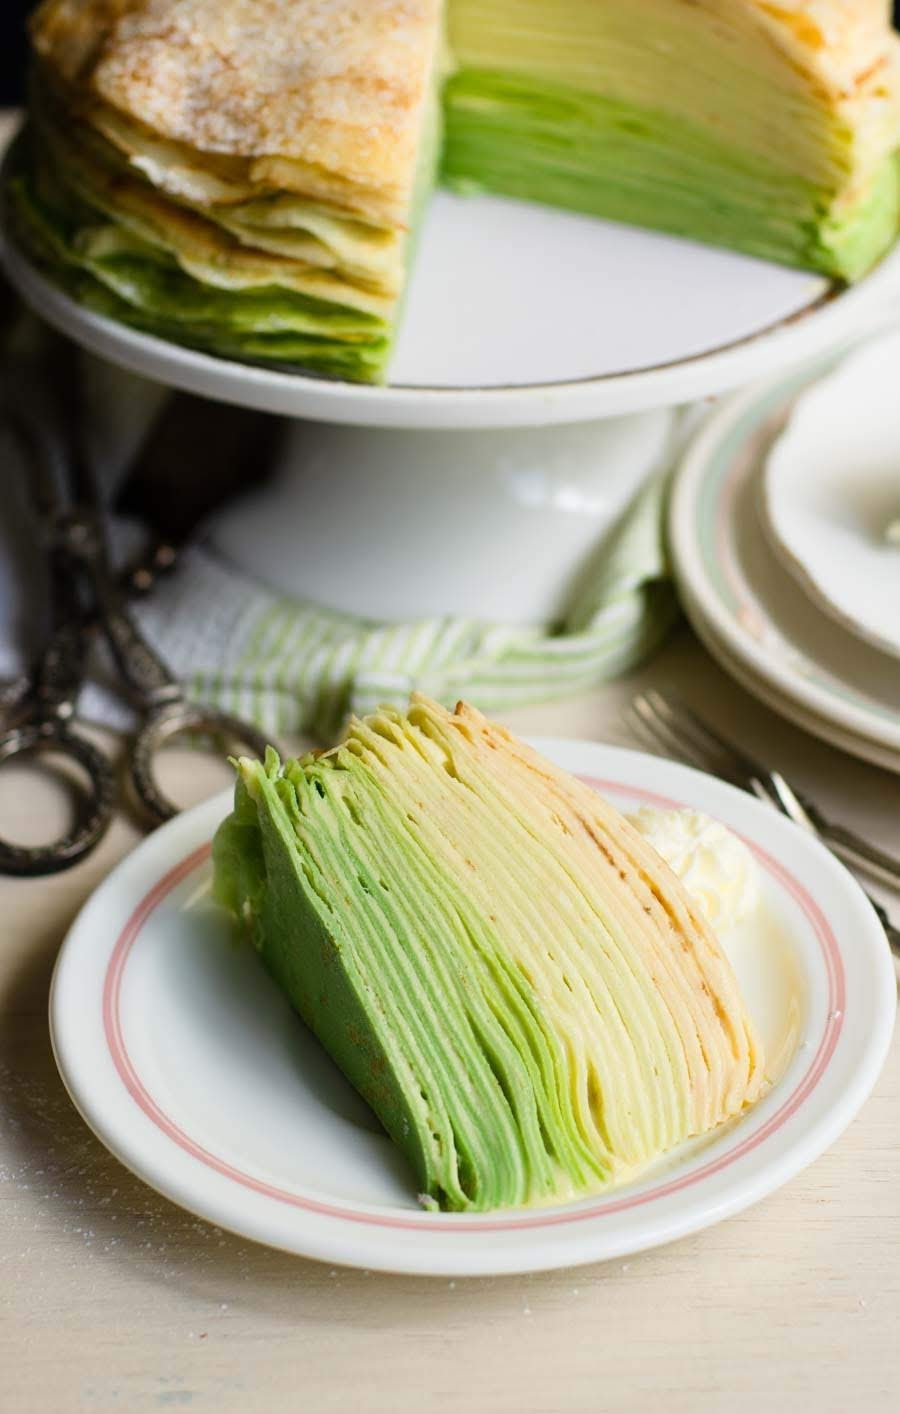 A slice of Green ombre durian crepe cake